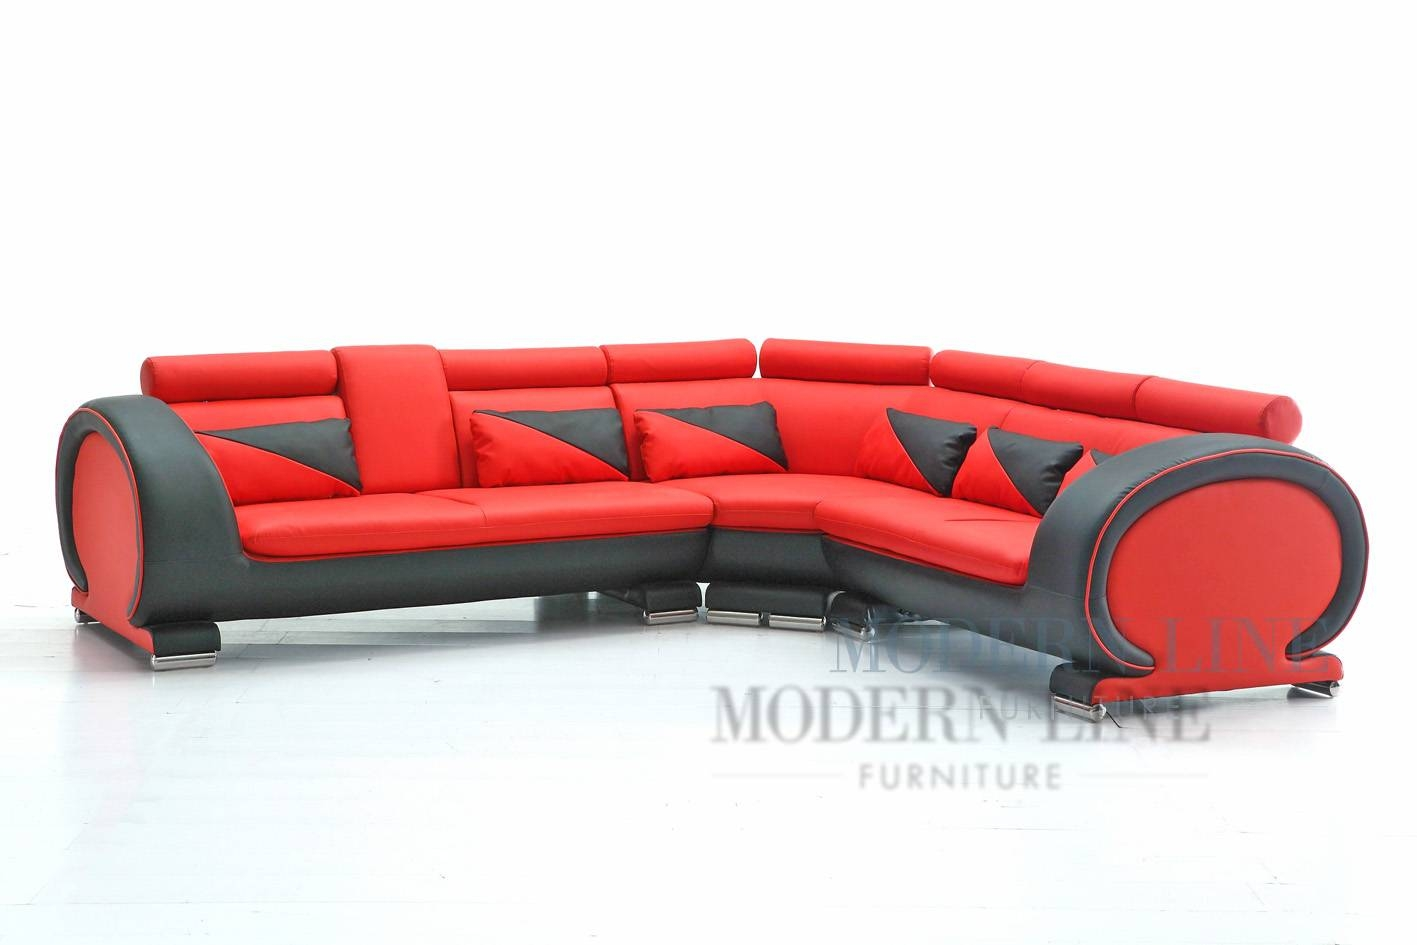 Modern Line Furniture - Commercial Furniture - Custom Made within Red Black Sectional Sofa (Image 20 of 30)